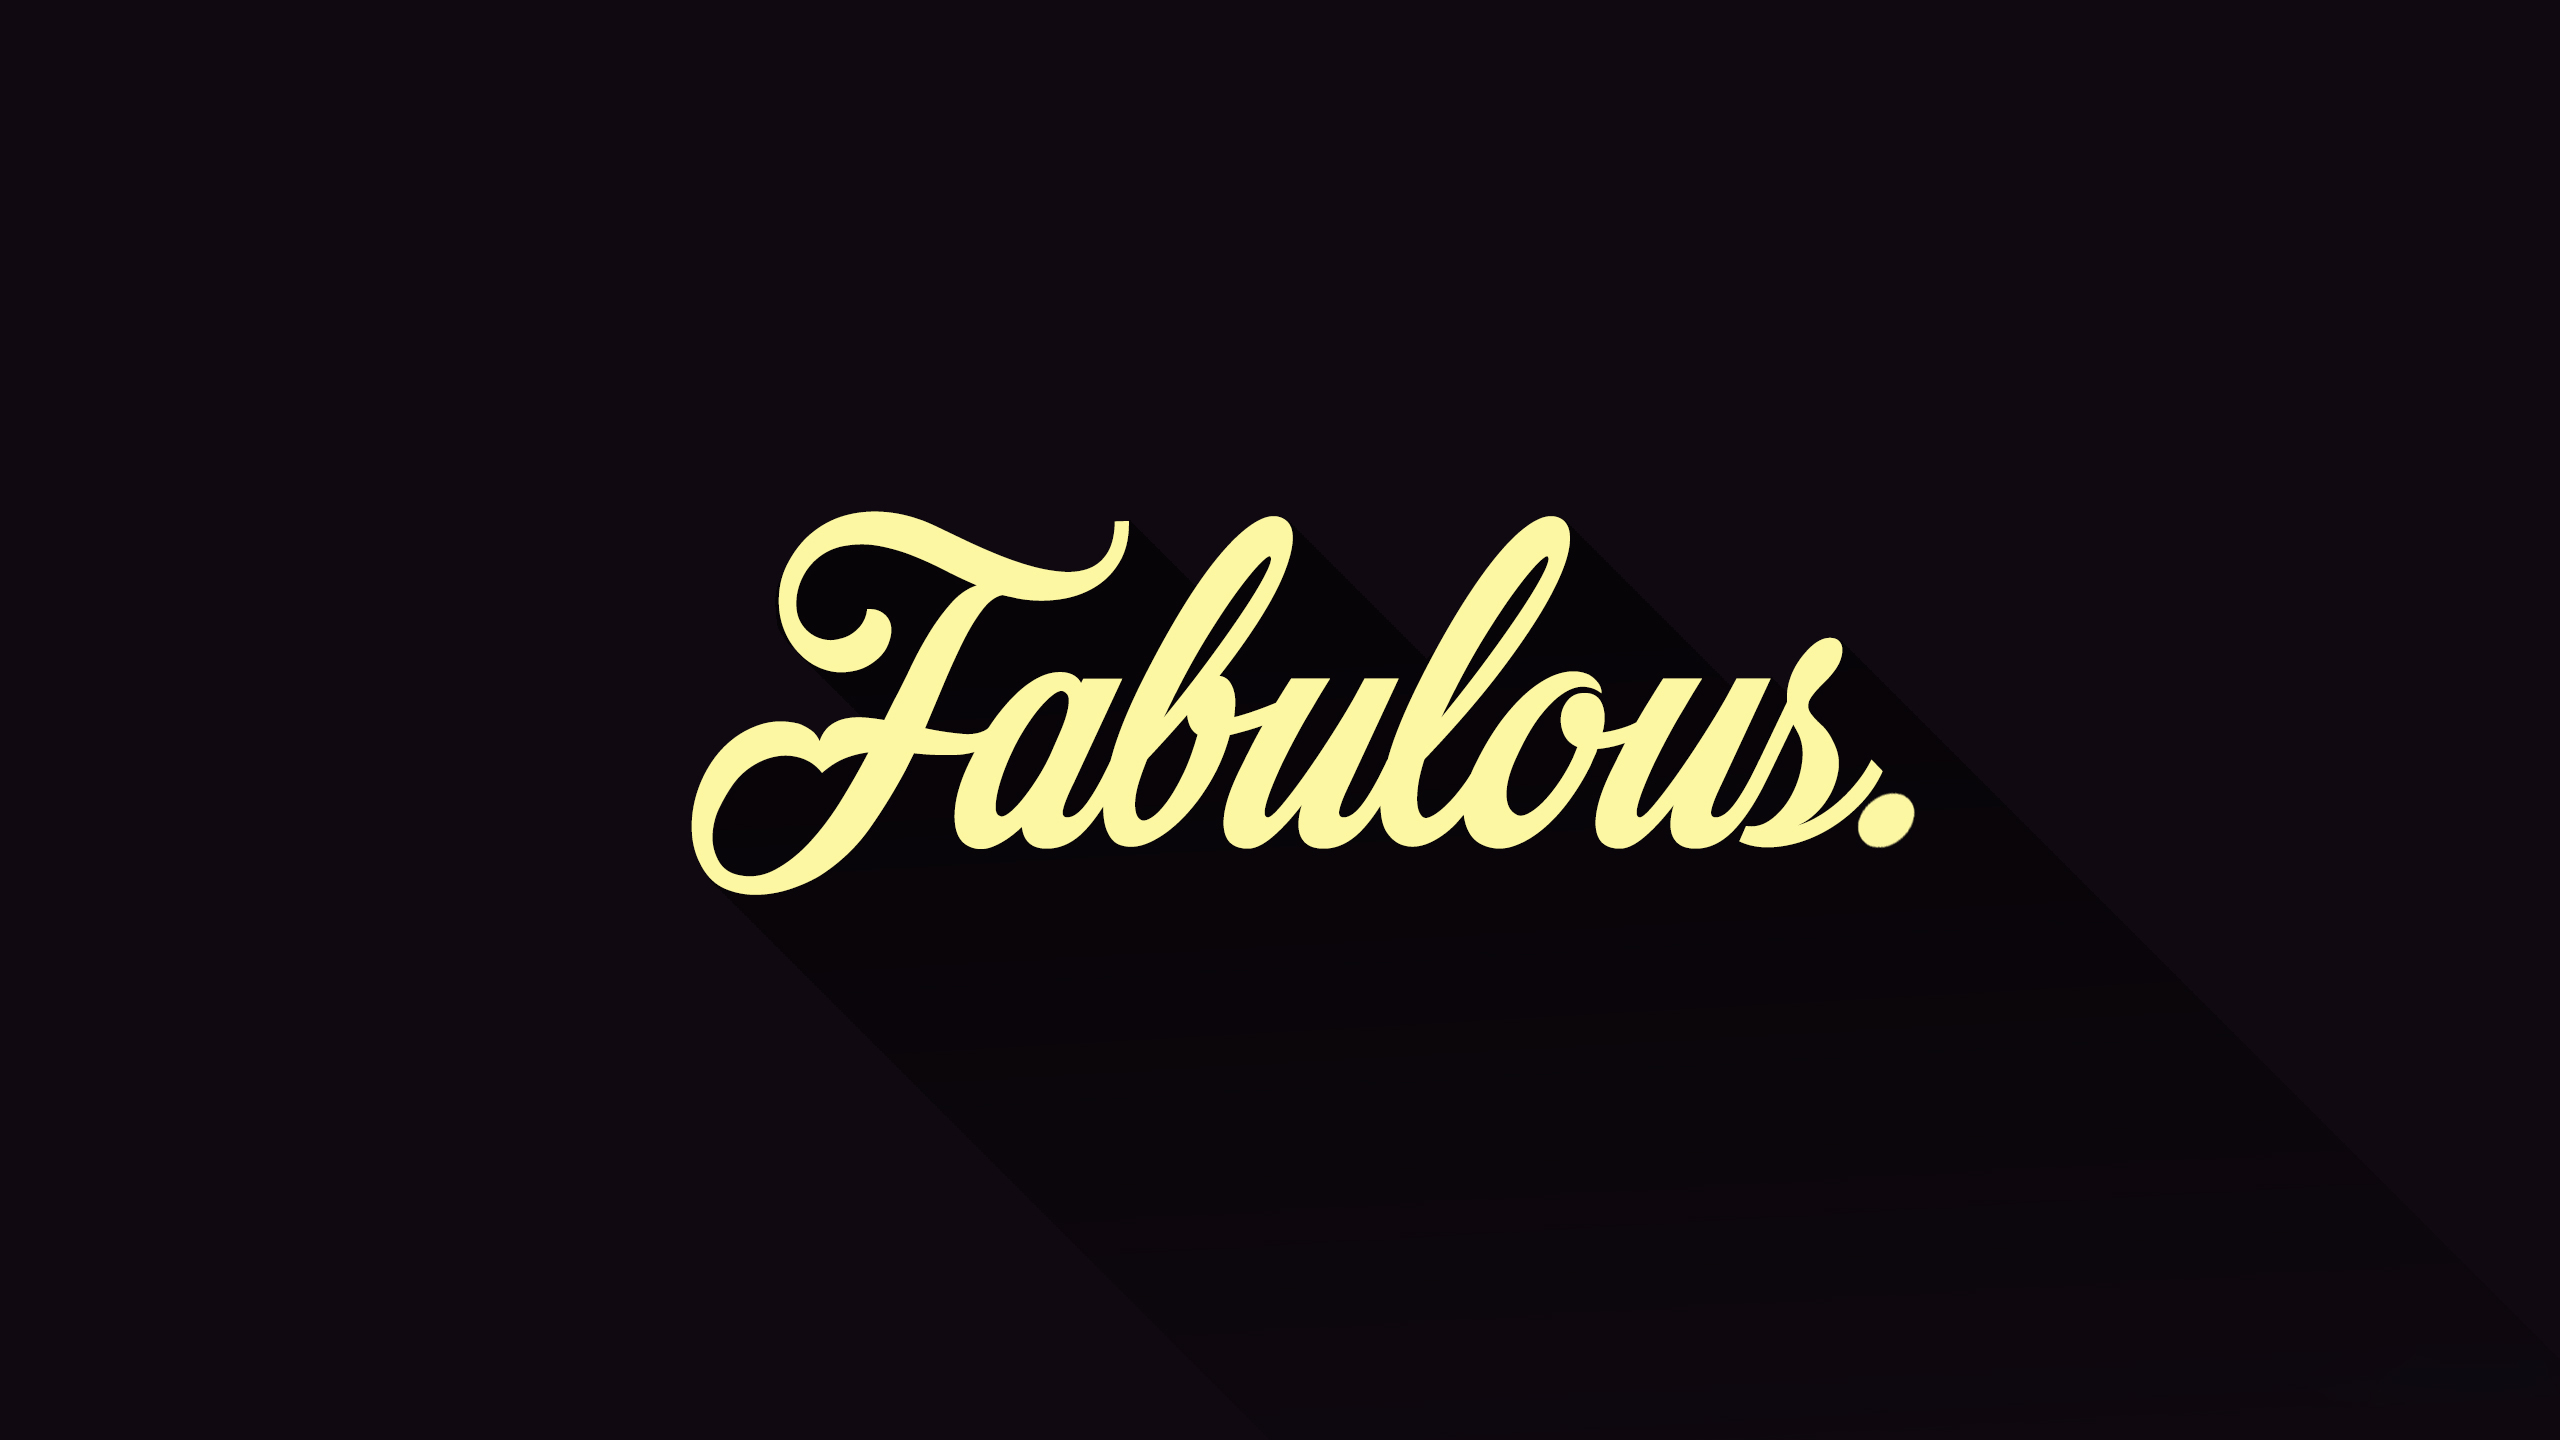 Fabulous Wallpapers HD 2560x1440